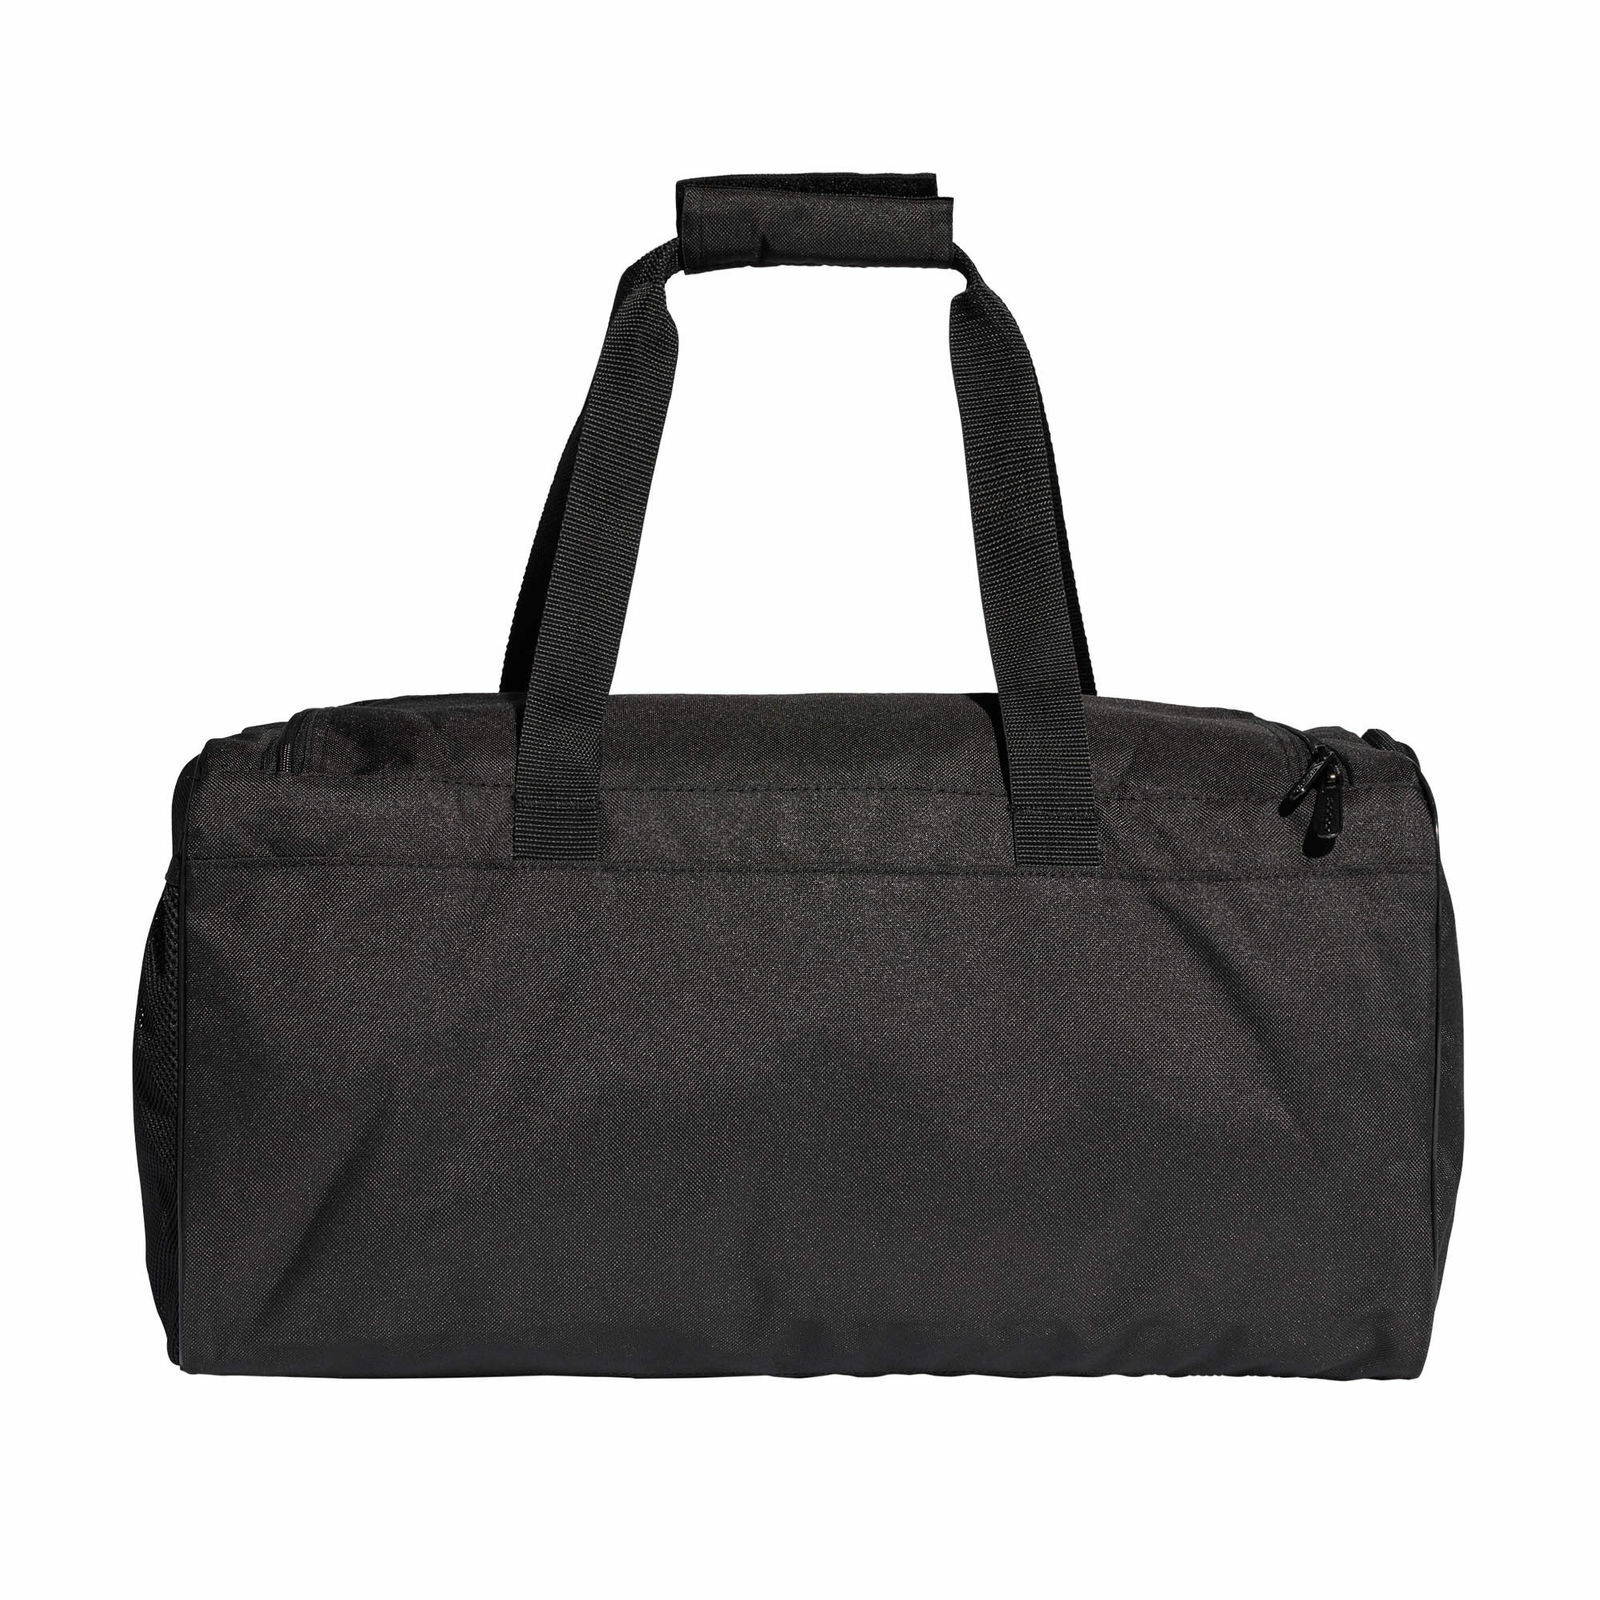 8f7718c67ad6 adidas Linear Core Small Sports Bag A26682800 for sale online